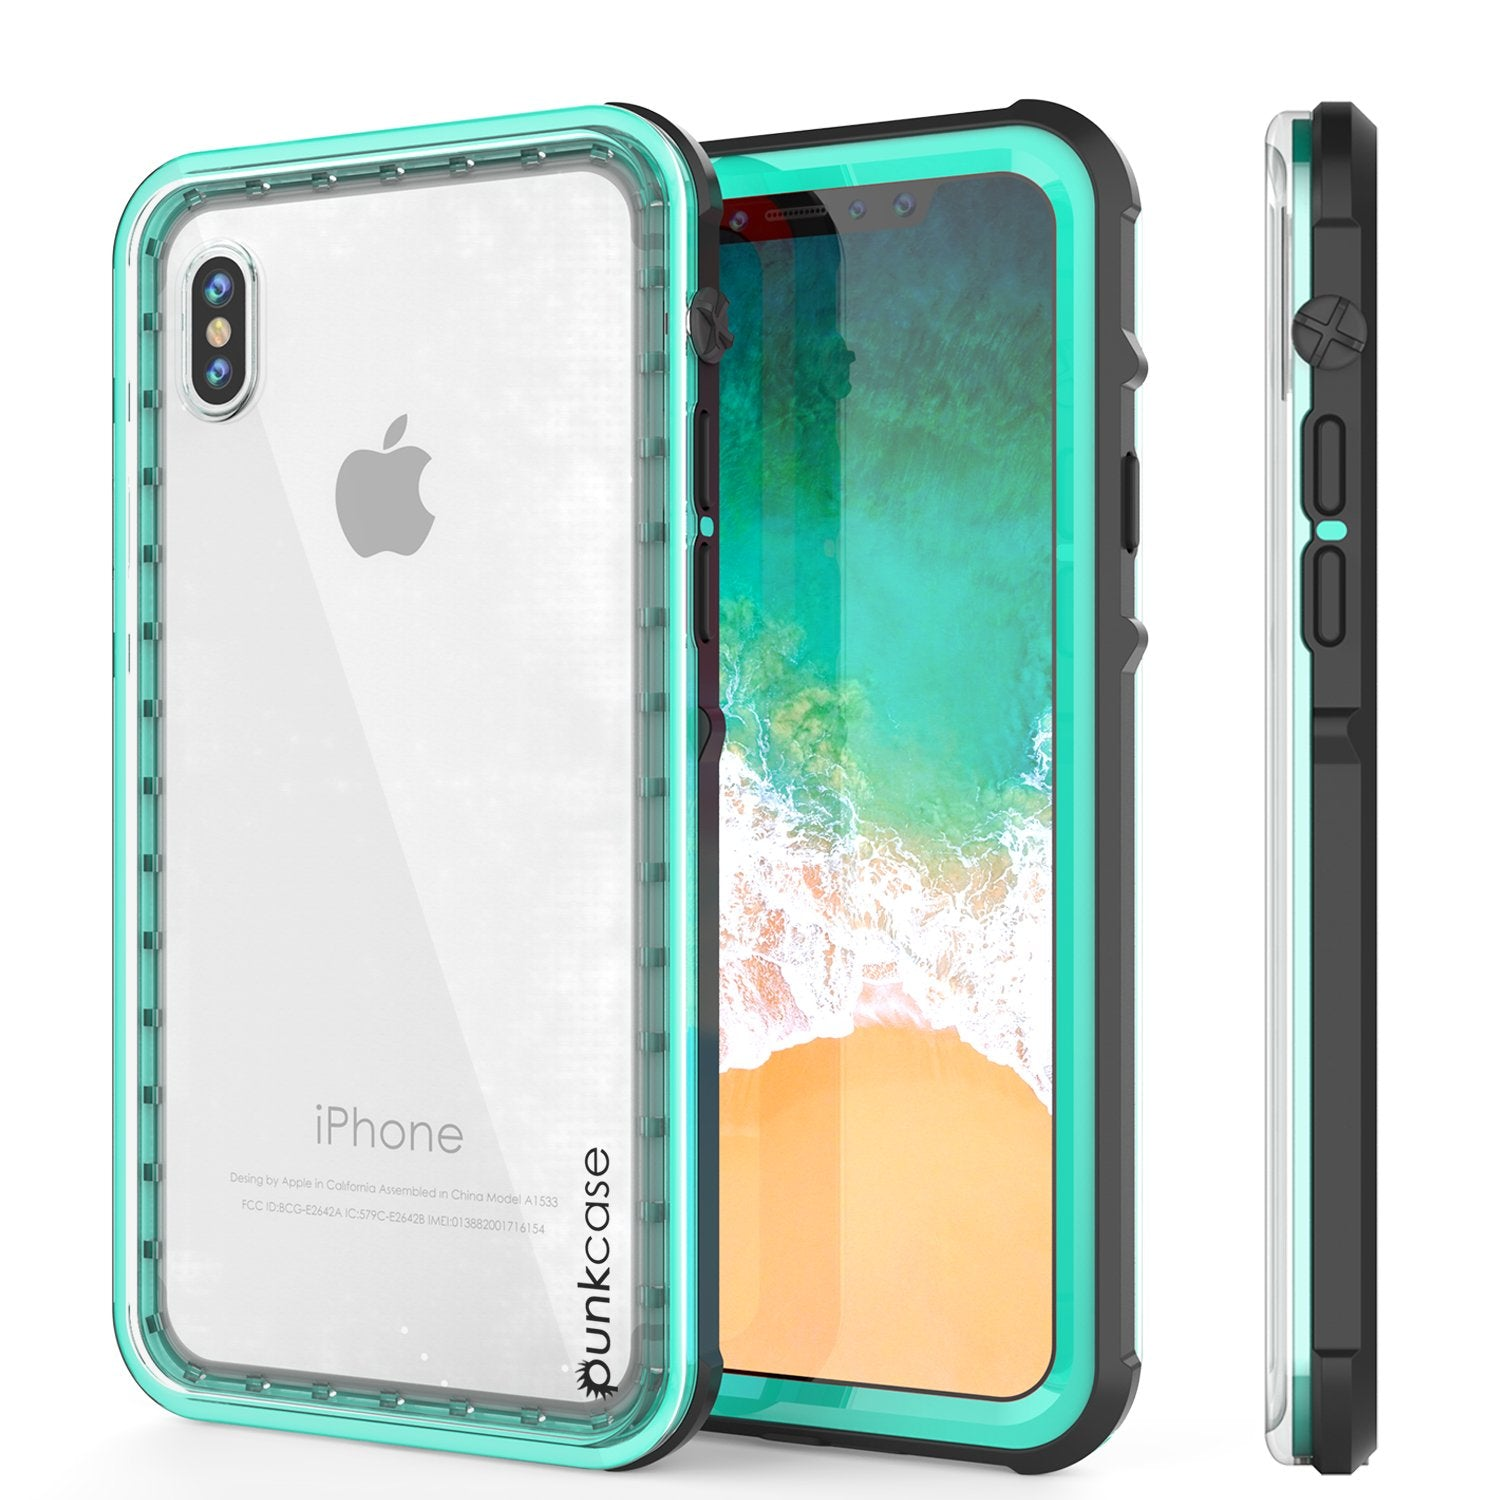 iPhone X Punkcase CRYSTAL SERIES Cover W/Screen Protector, [Teal]